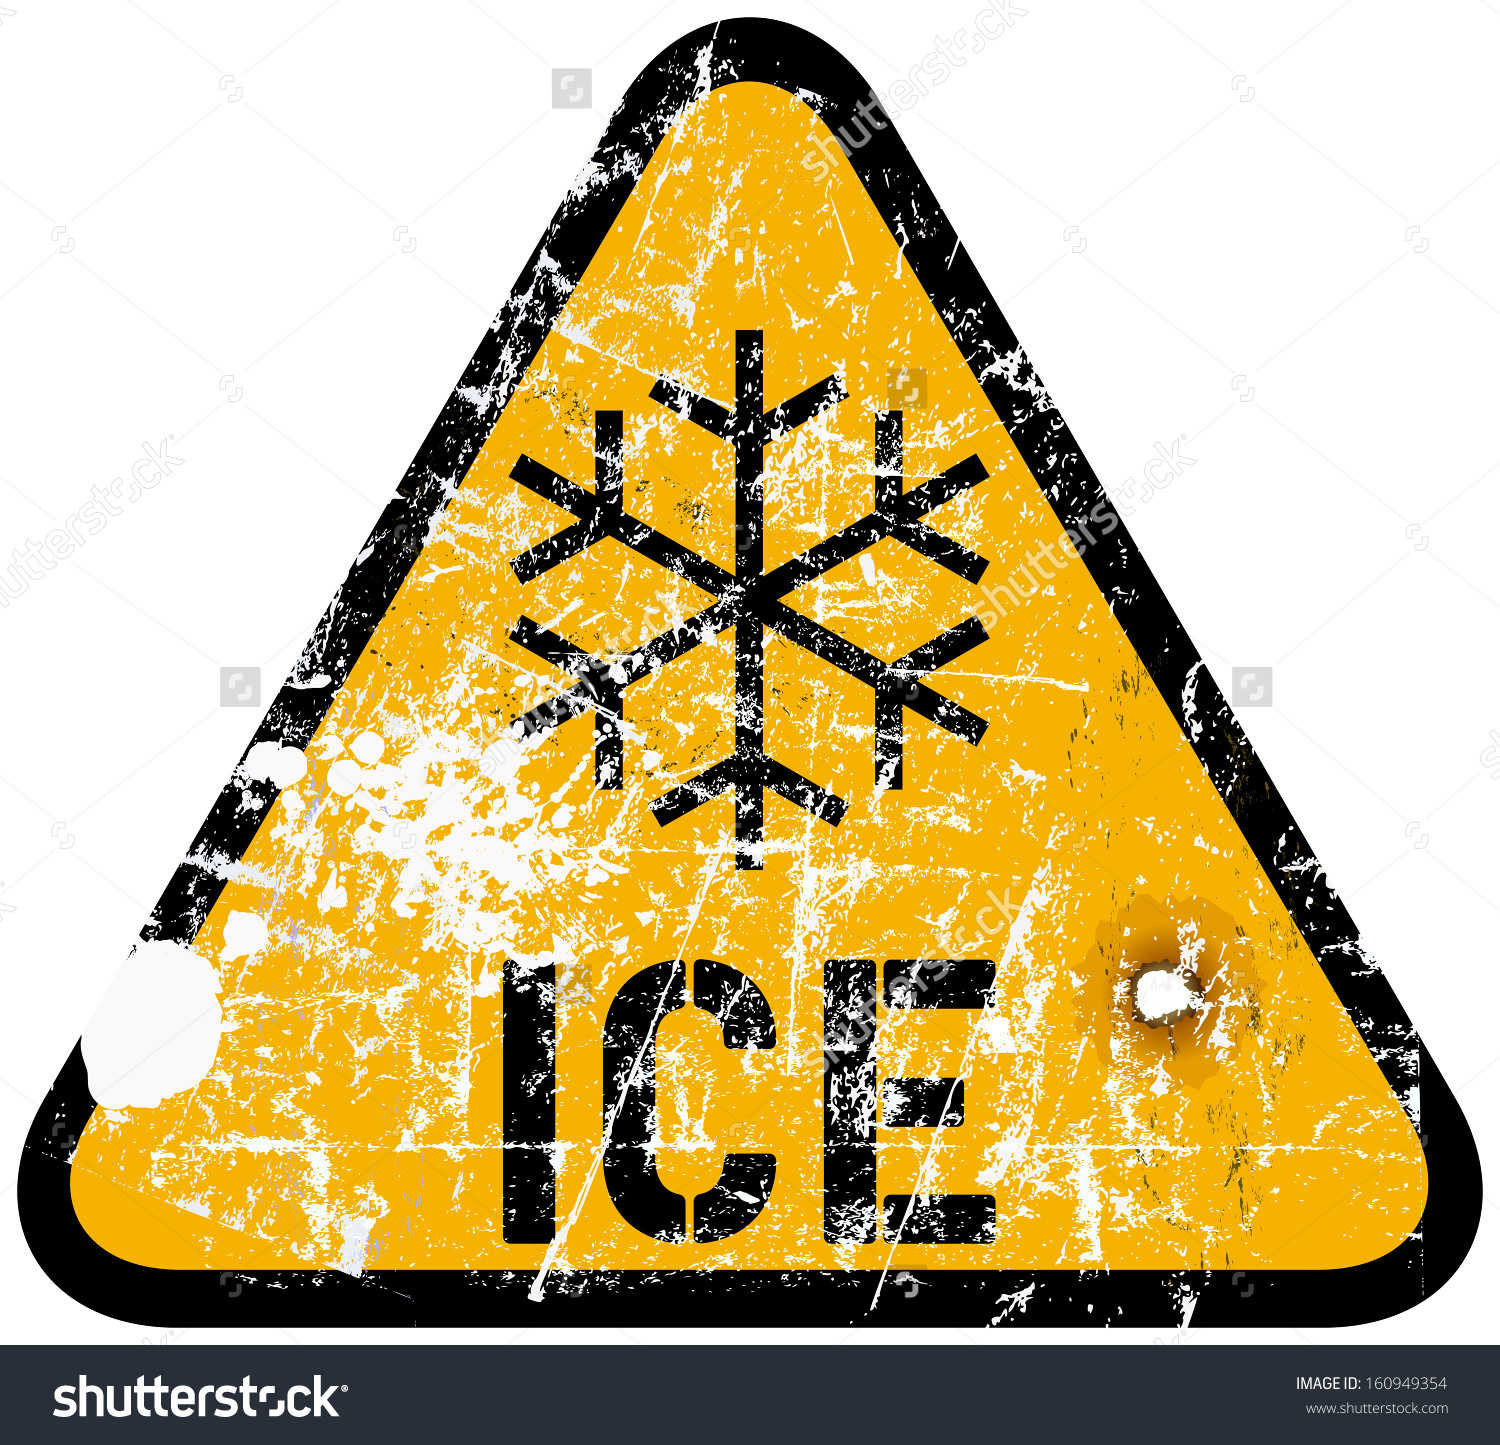 Ice storm clipart.